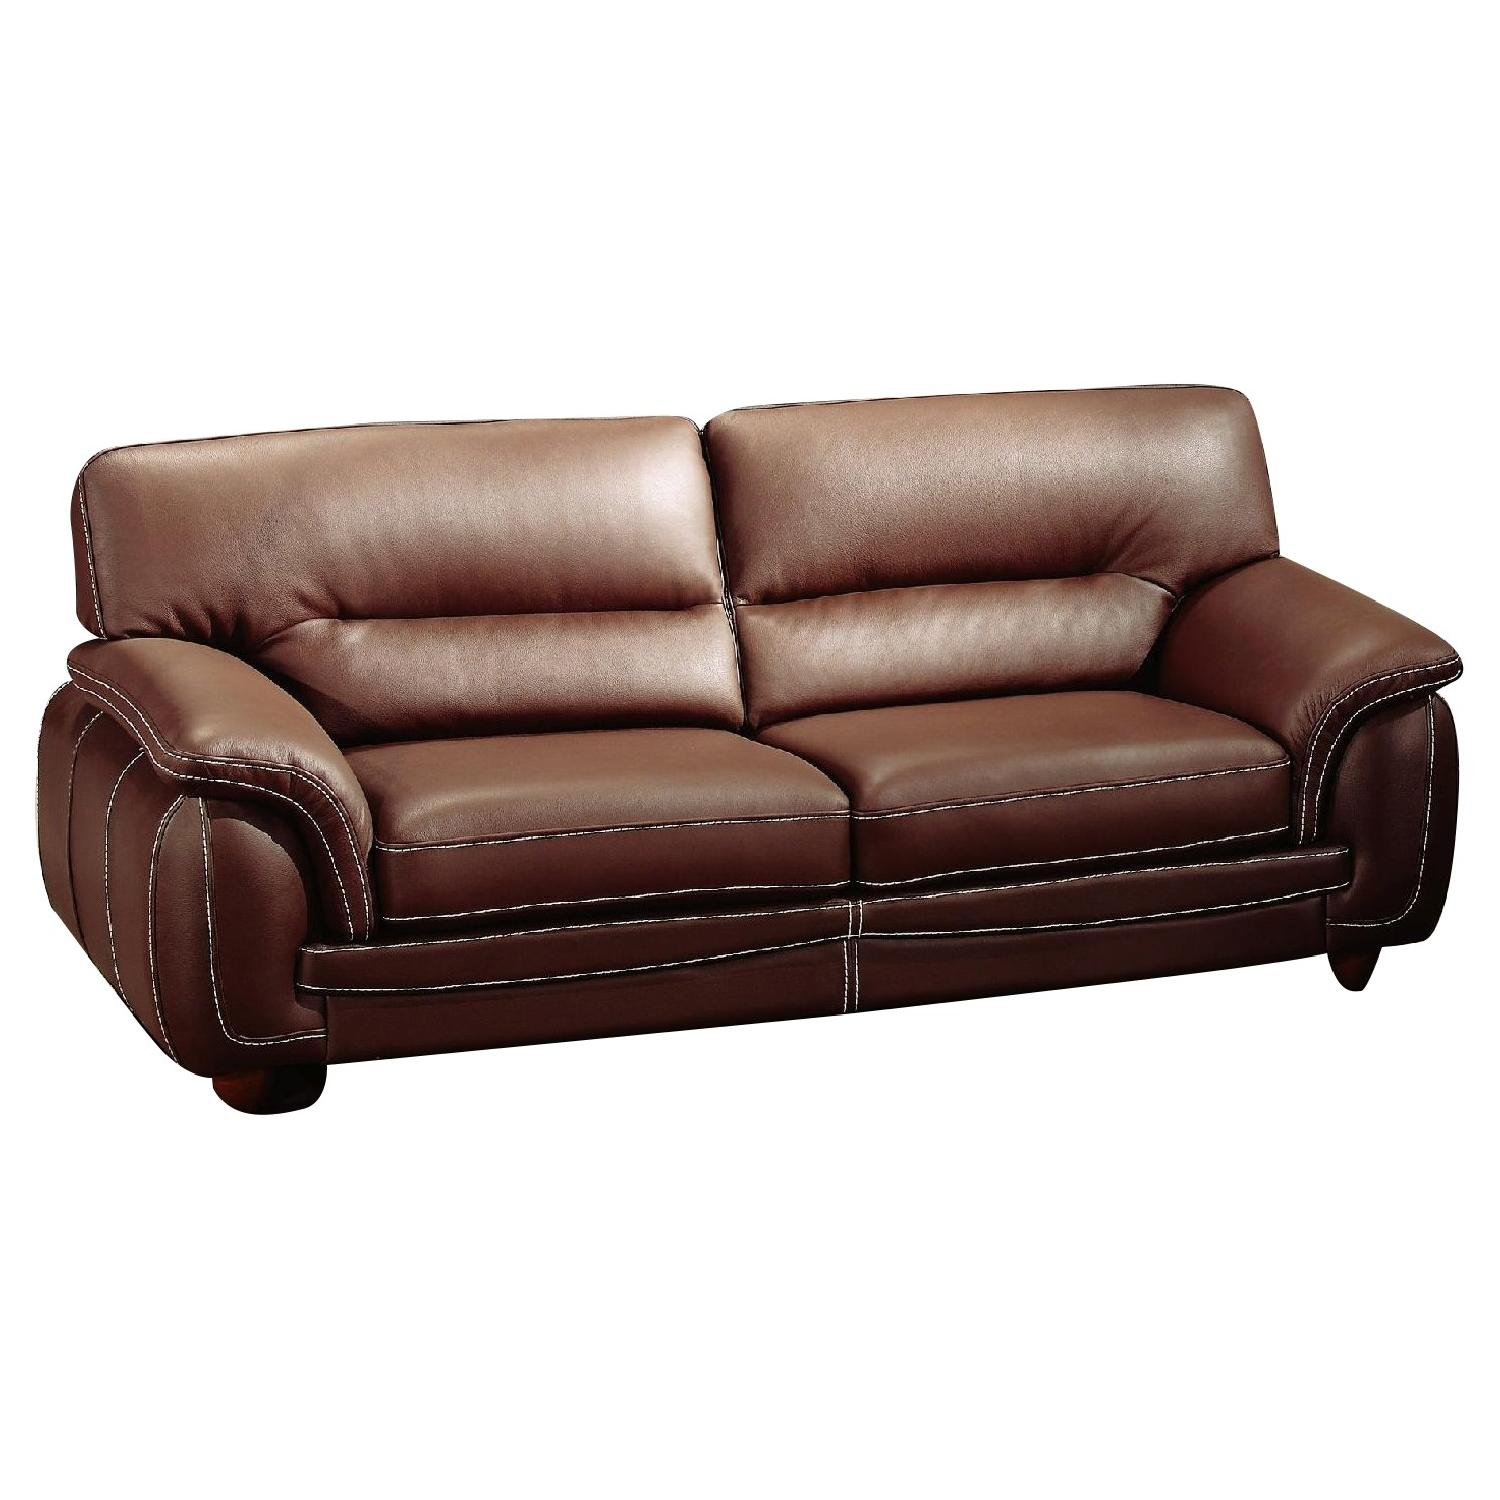 Modern Sofa In Brown Top Grain Leather W/ High Density Foam